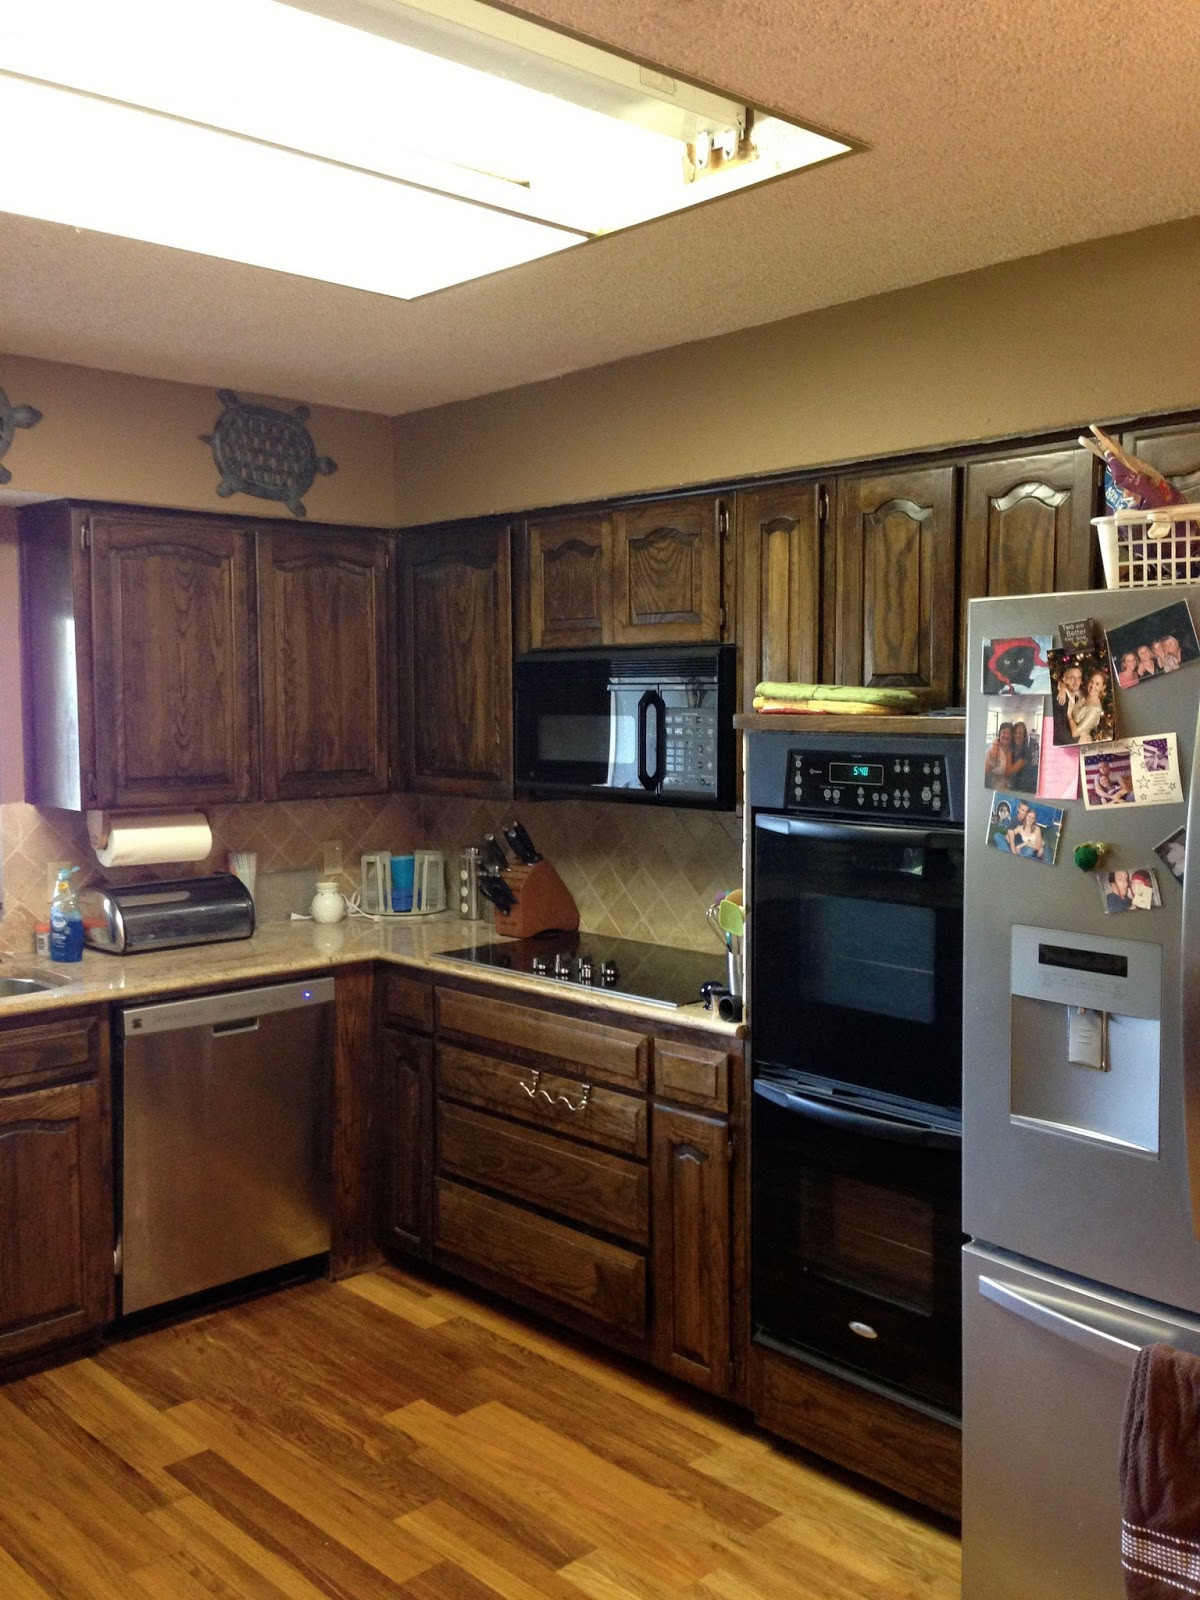 Chalk Paint Kitchen Cabinets Before And After  Wilker Do s Using Chalk Paint to Refinish Kitchen Cabinets